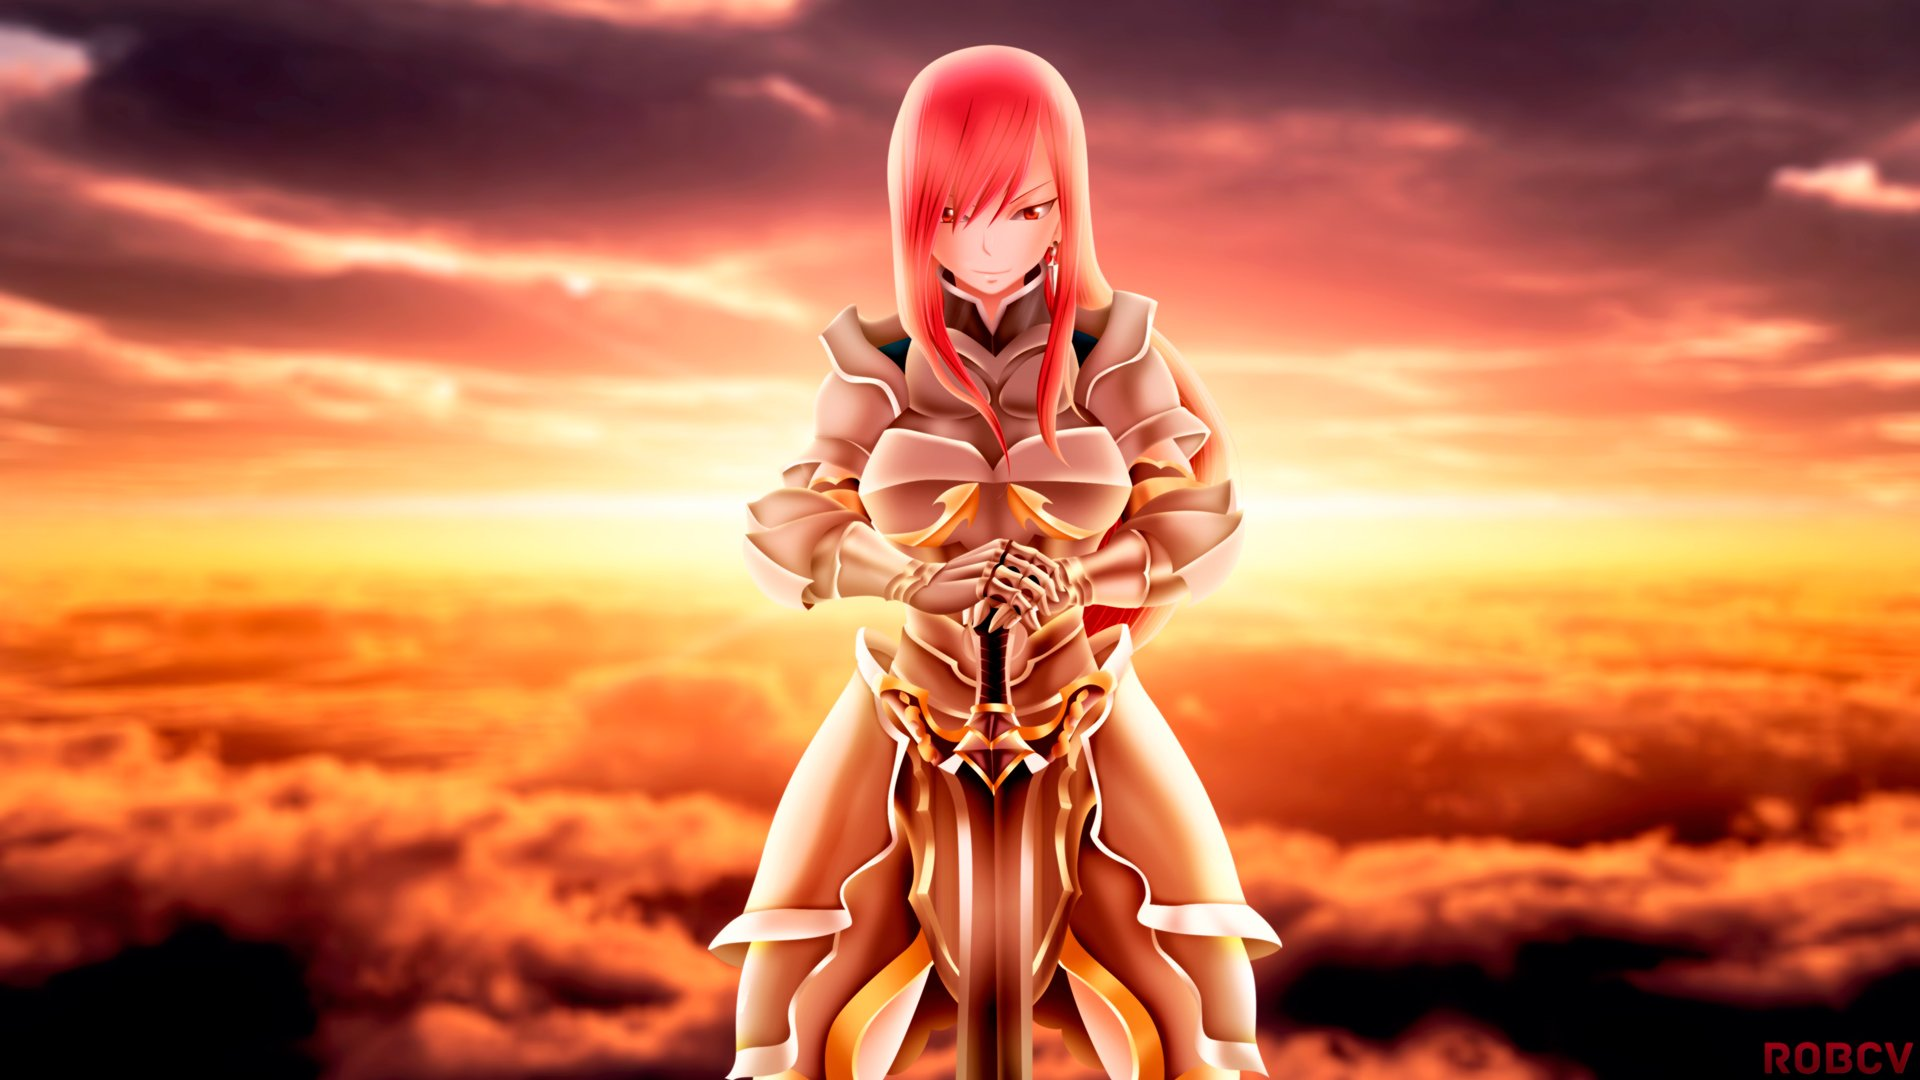 erza scarlet armor and sword fairy tail anime girl hd 1920x1080 1080p 1920x1080